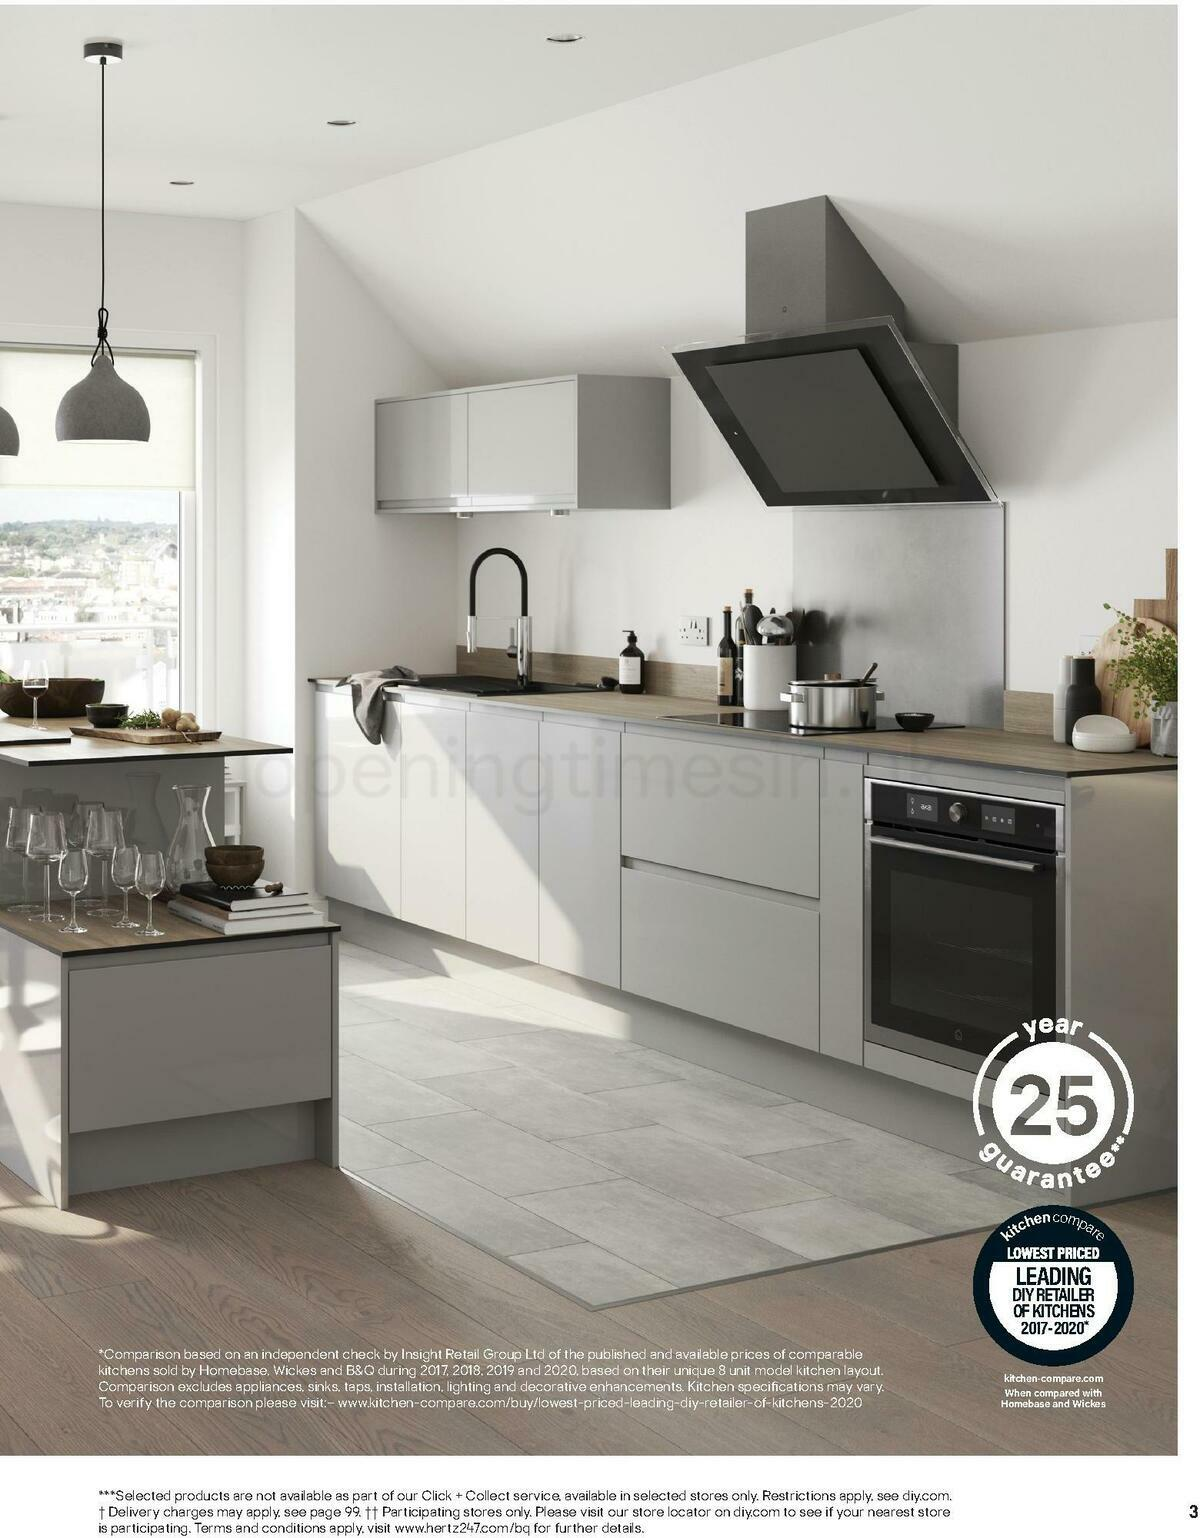 B&Q Kitchens Inspiration Offers from June 1